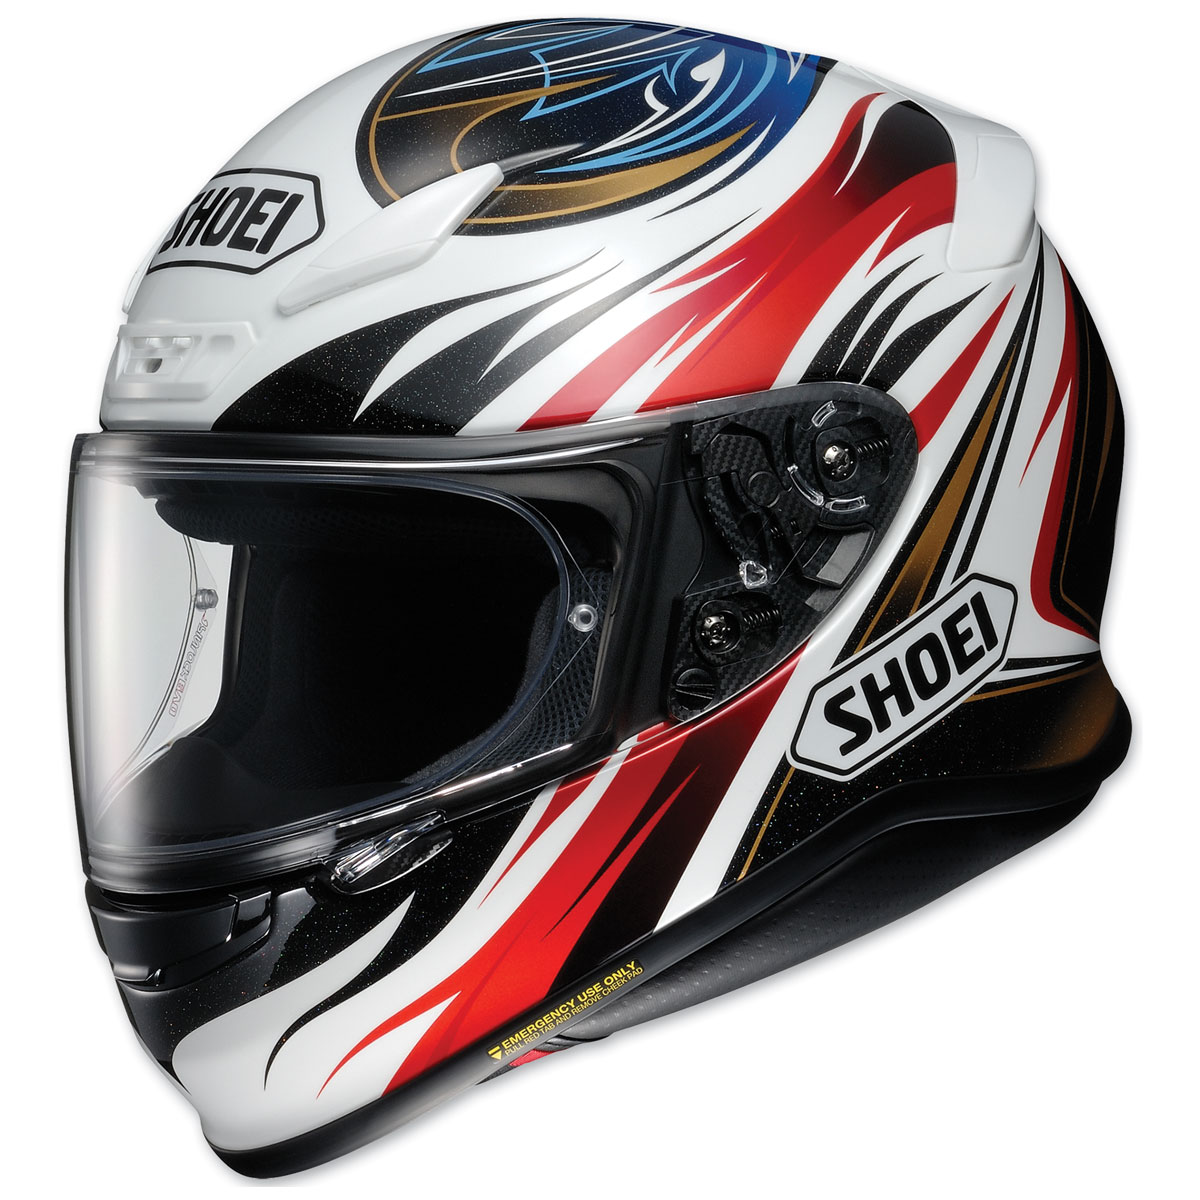 Shoei RF-1200 Incision Black/Red/White/Blue Full Face Helmet